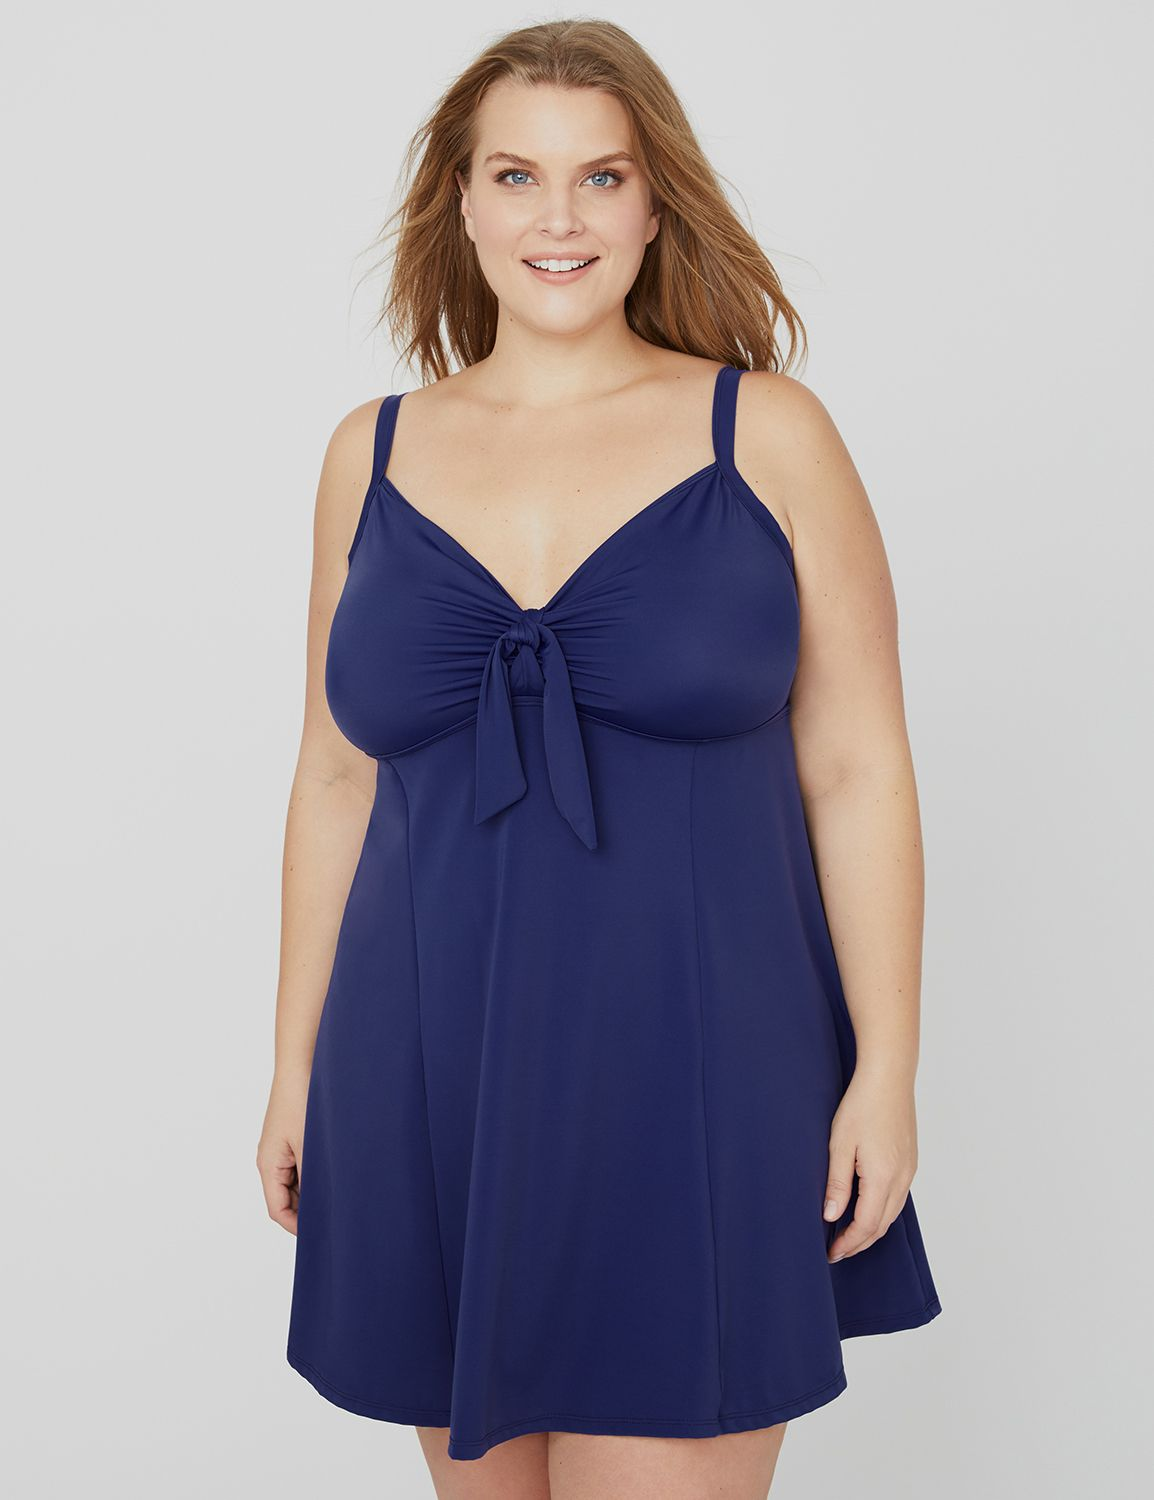 Sugar Hollow Swimdress Tie Front Swim Dress MP-300094192